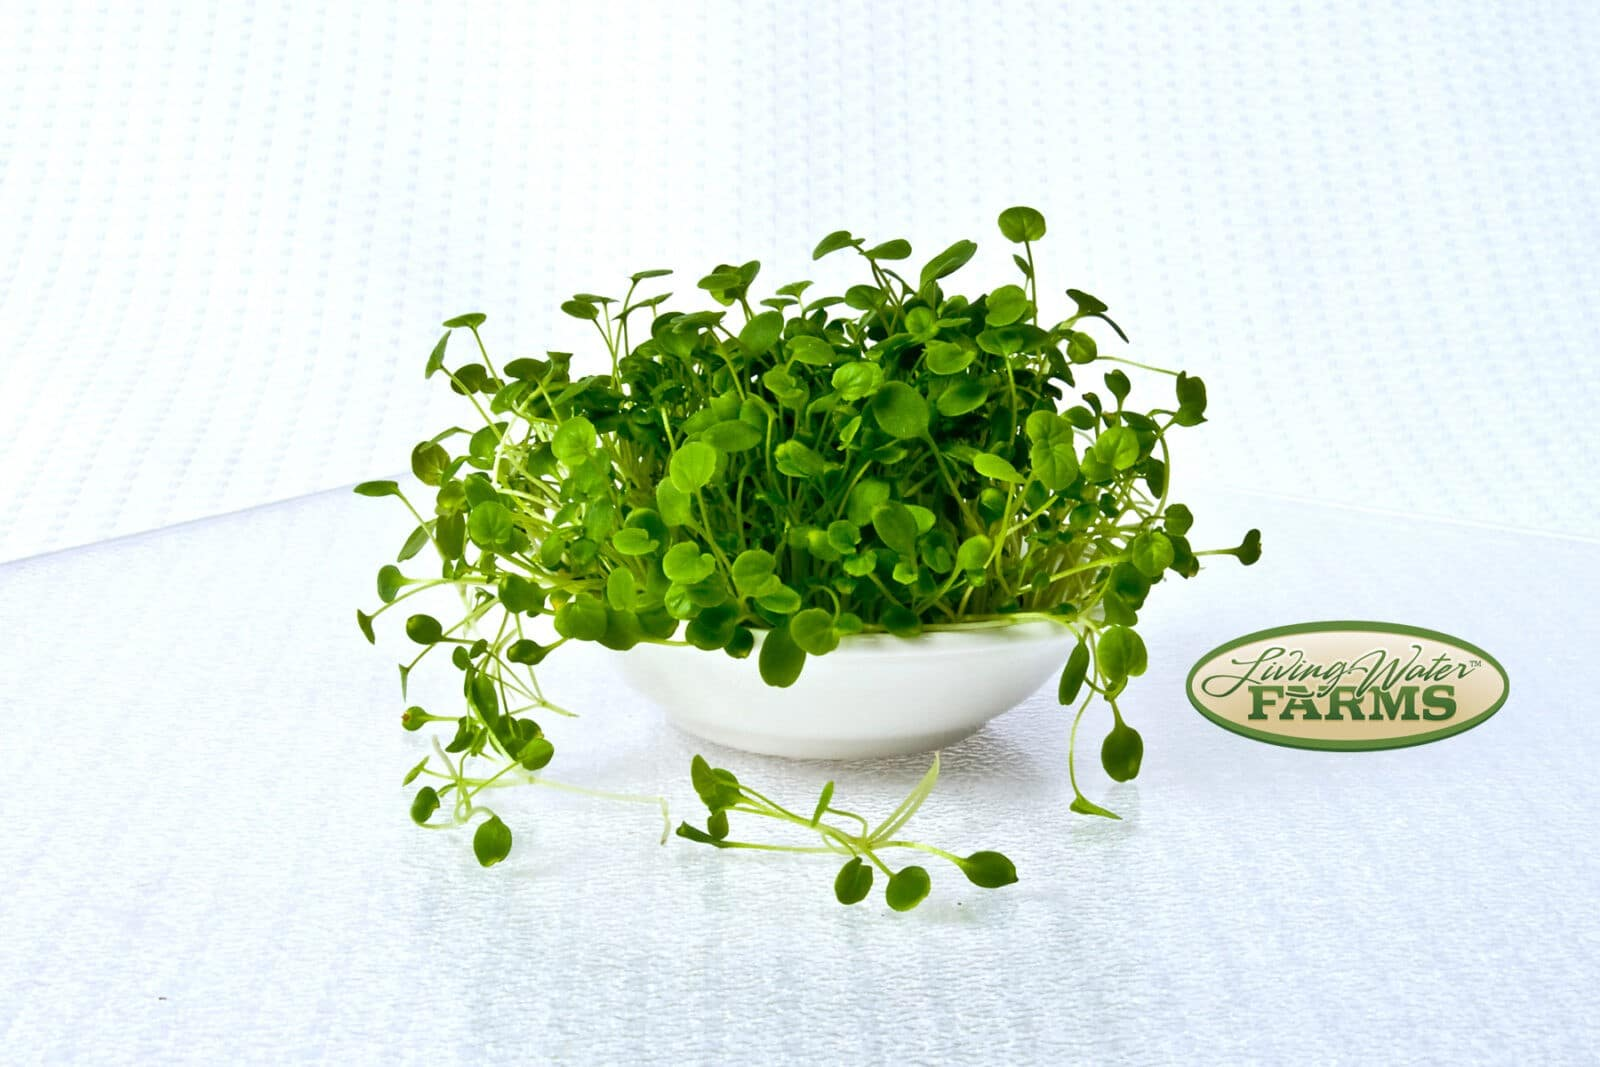 Living Water Farms Micro Greens Cress